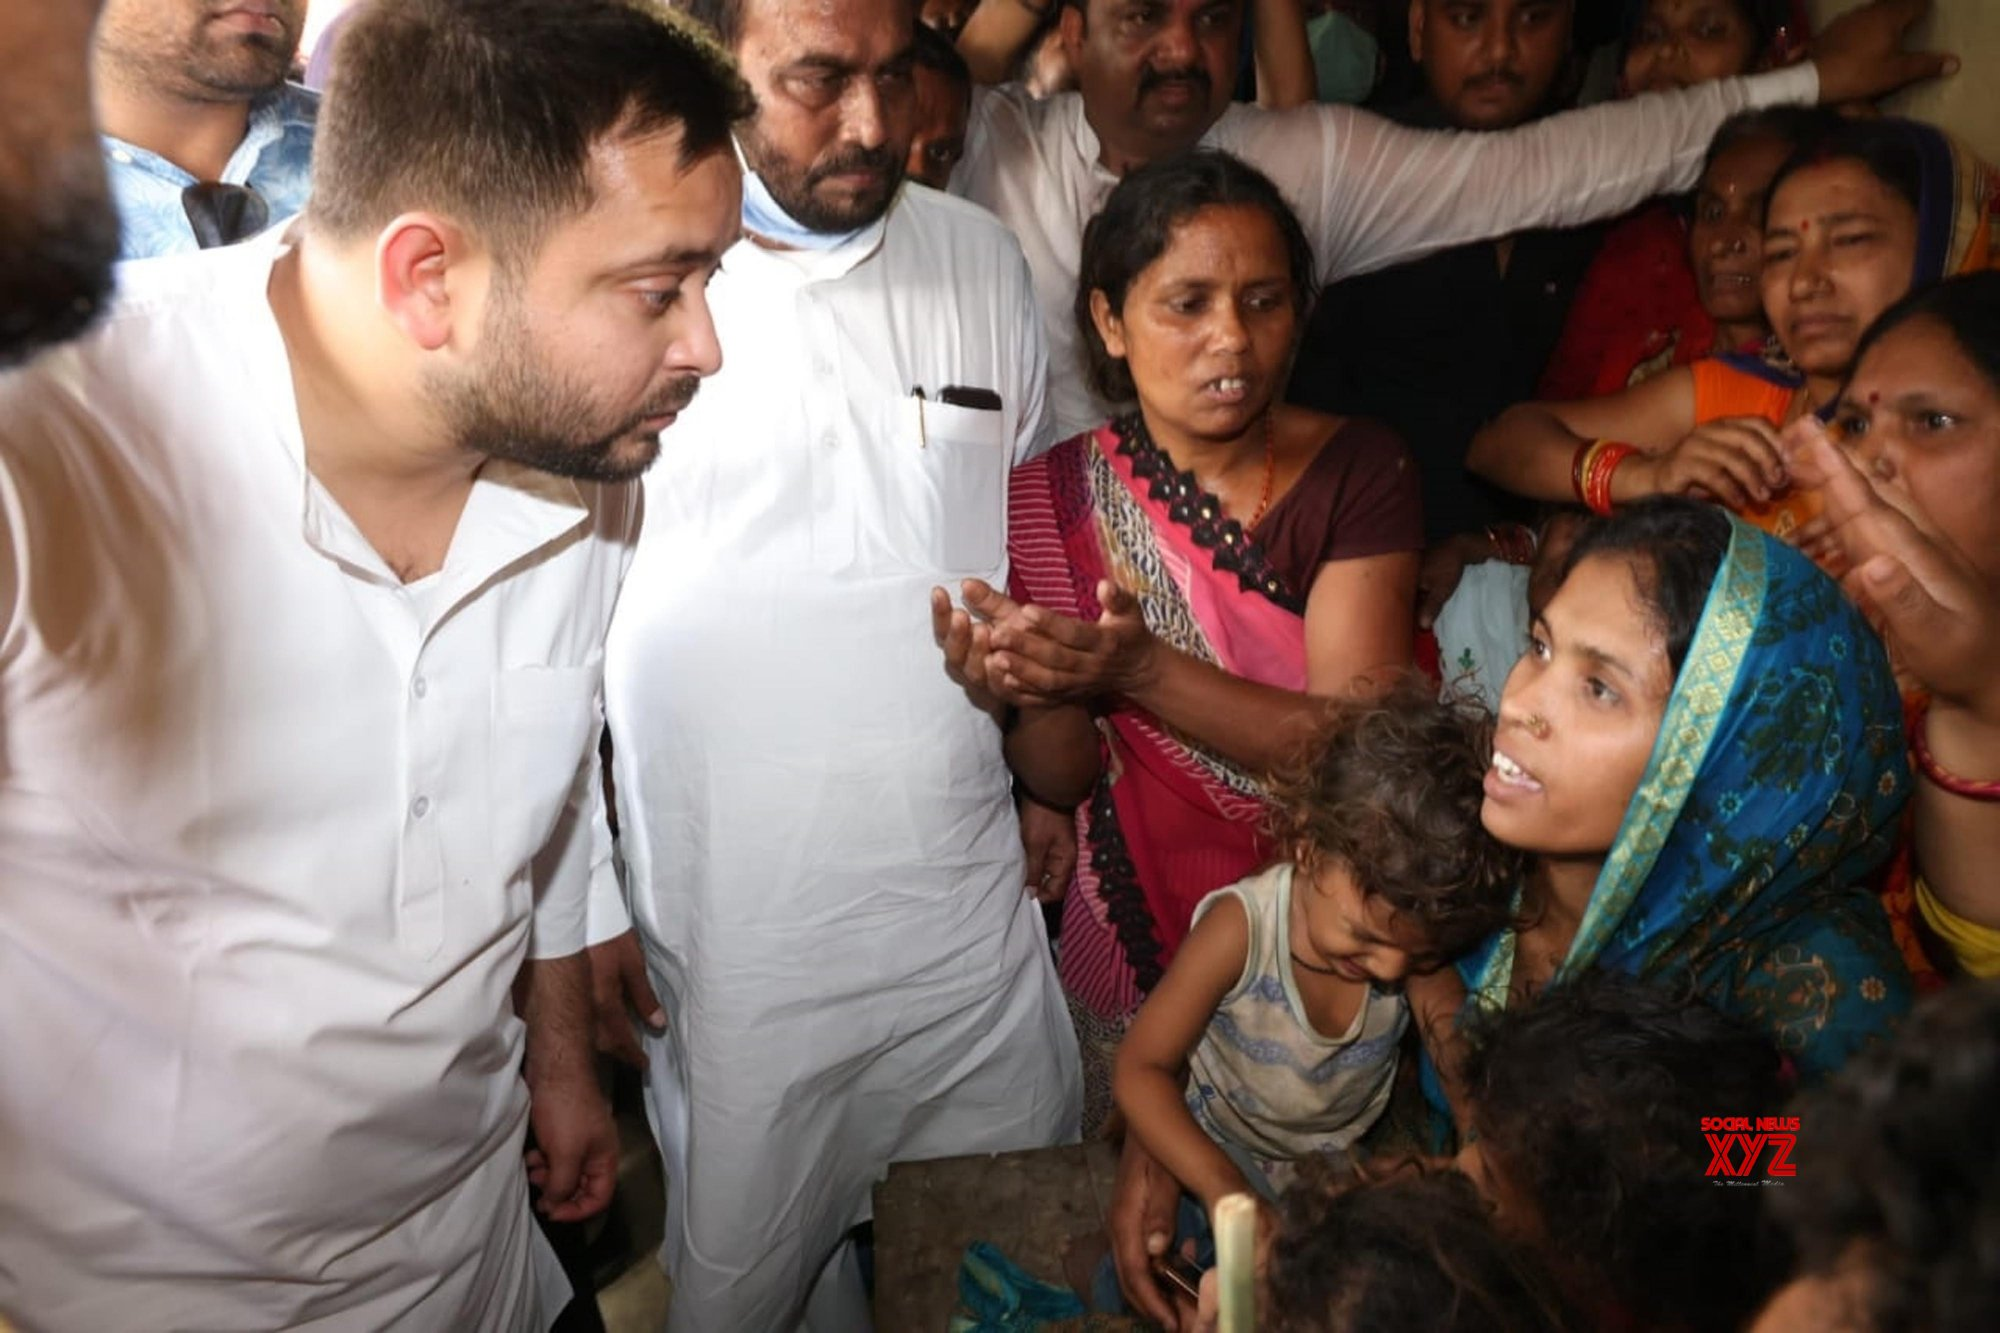 Patna: Madhubani : Rashtriya Janta Dal leader Tejaswi Yadav meet with Victims families of Muhammadpur murder case, in Madhubani district on Tuesday April 6,2021. #Gallery